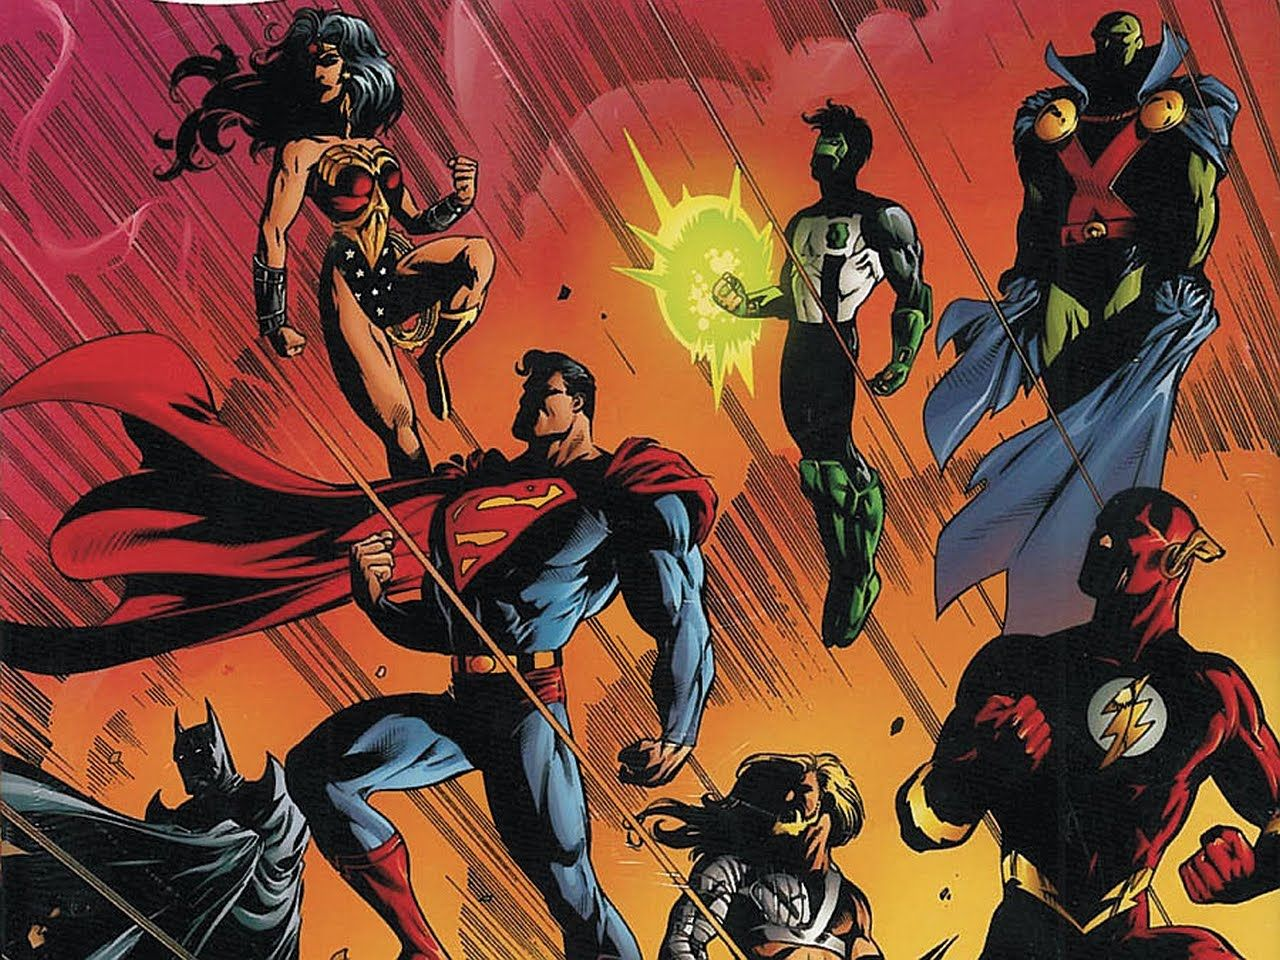 Download Free Dc Comics In Pdf And Cbr Format -1165